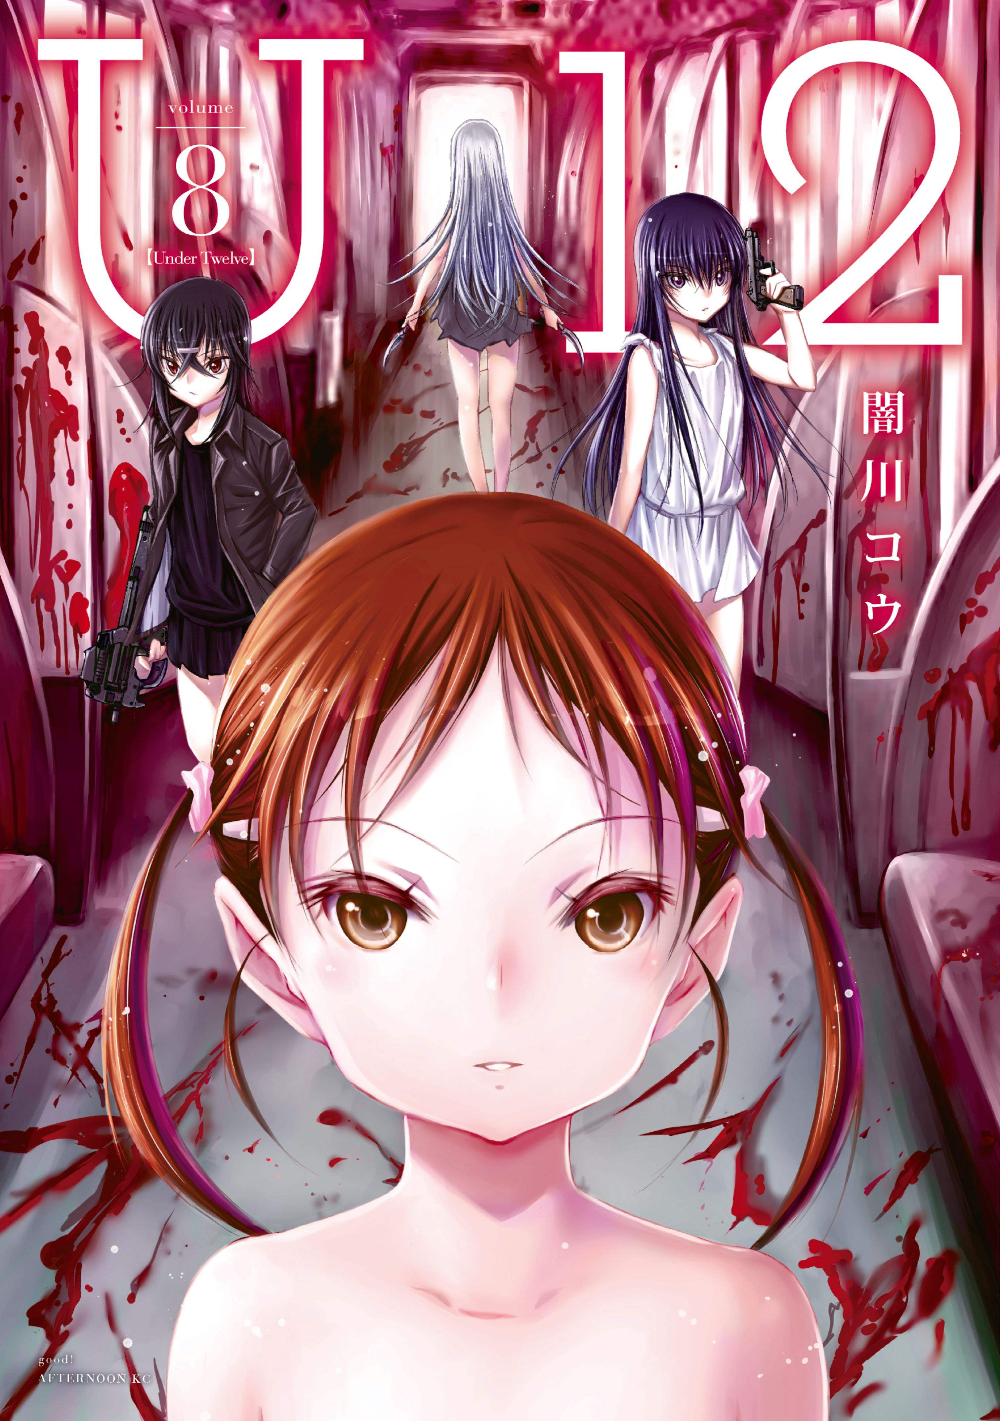 U12 (Under 12) (Title) MangaDex in 2020 Anime, Book